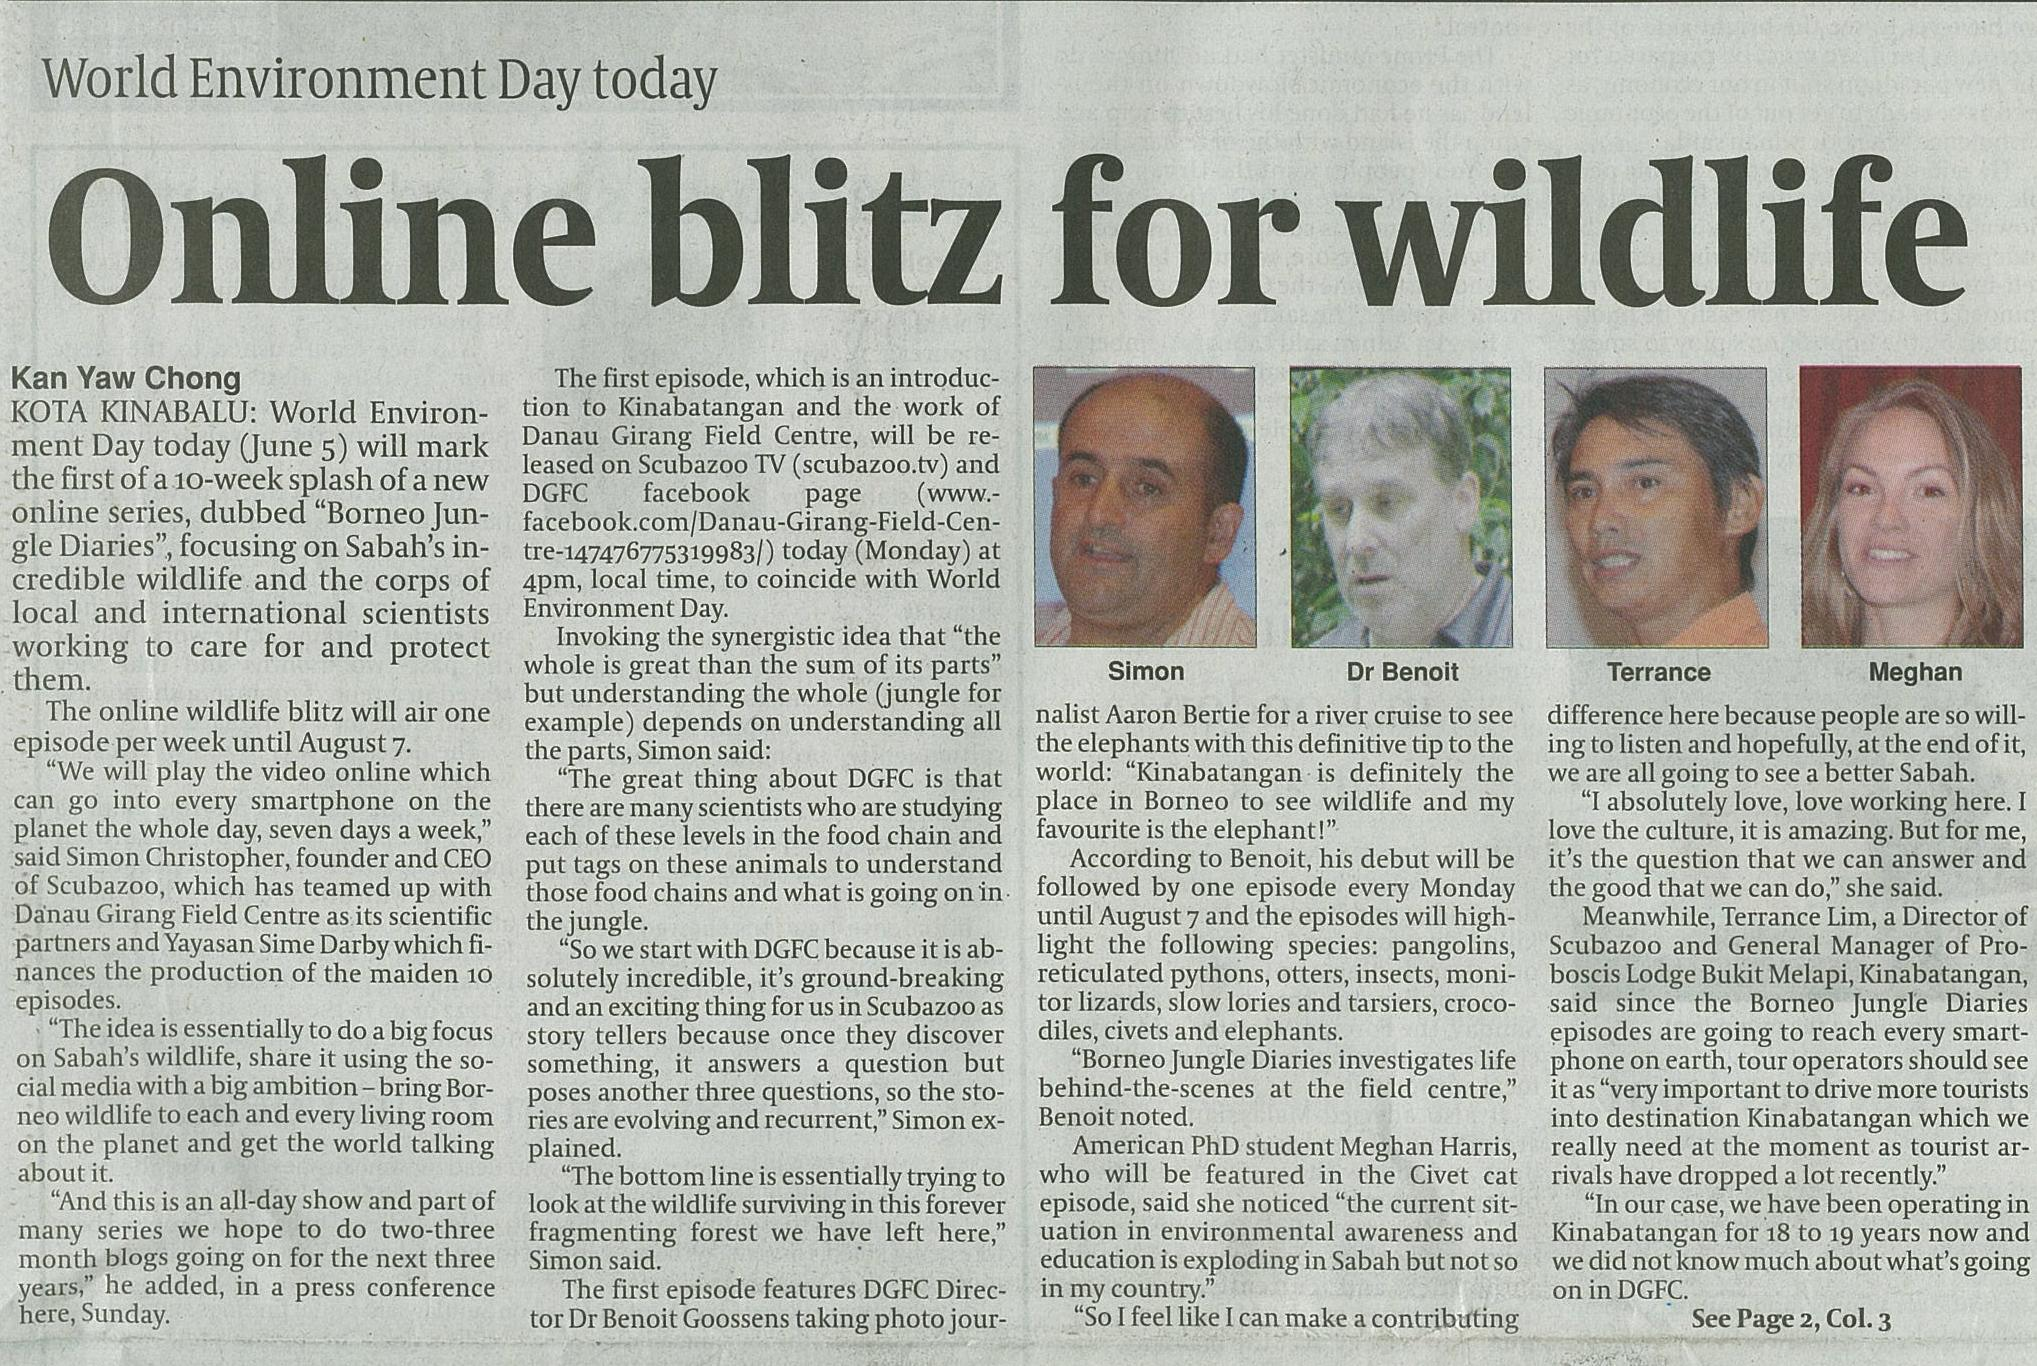 Daily Express - World Environment Day - Online Blitz for wildlife. 5th June 2017